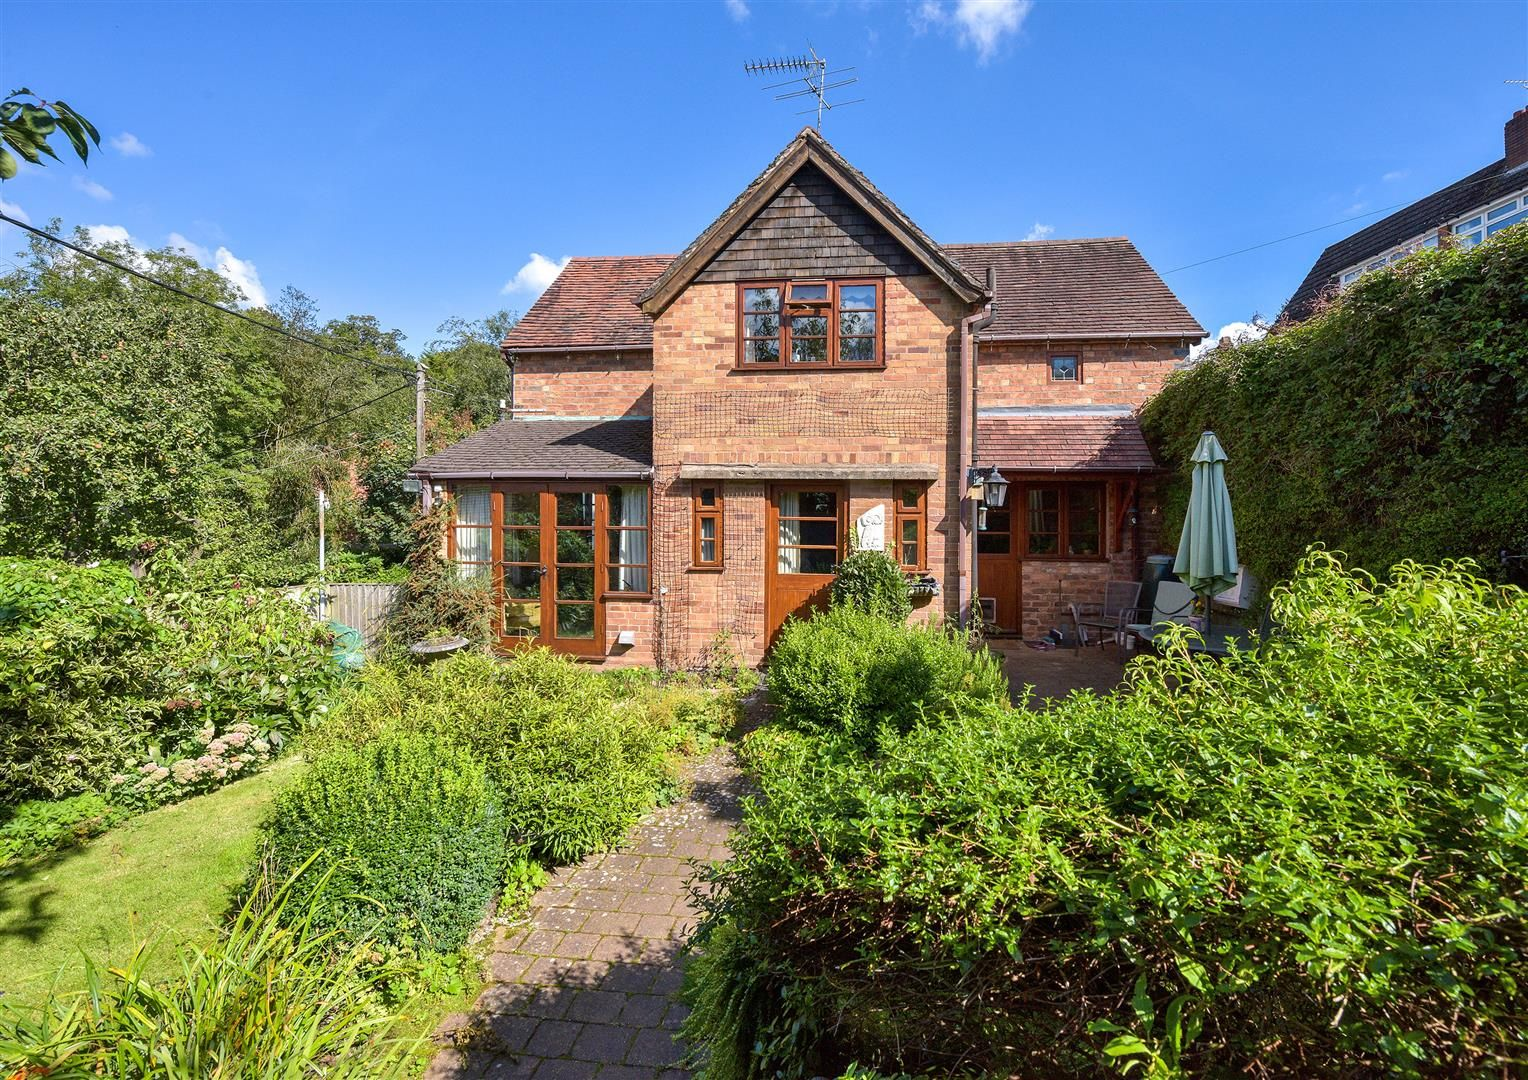 2 bed semi-detached for sale in Clent 1